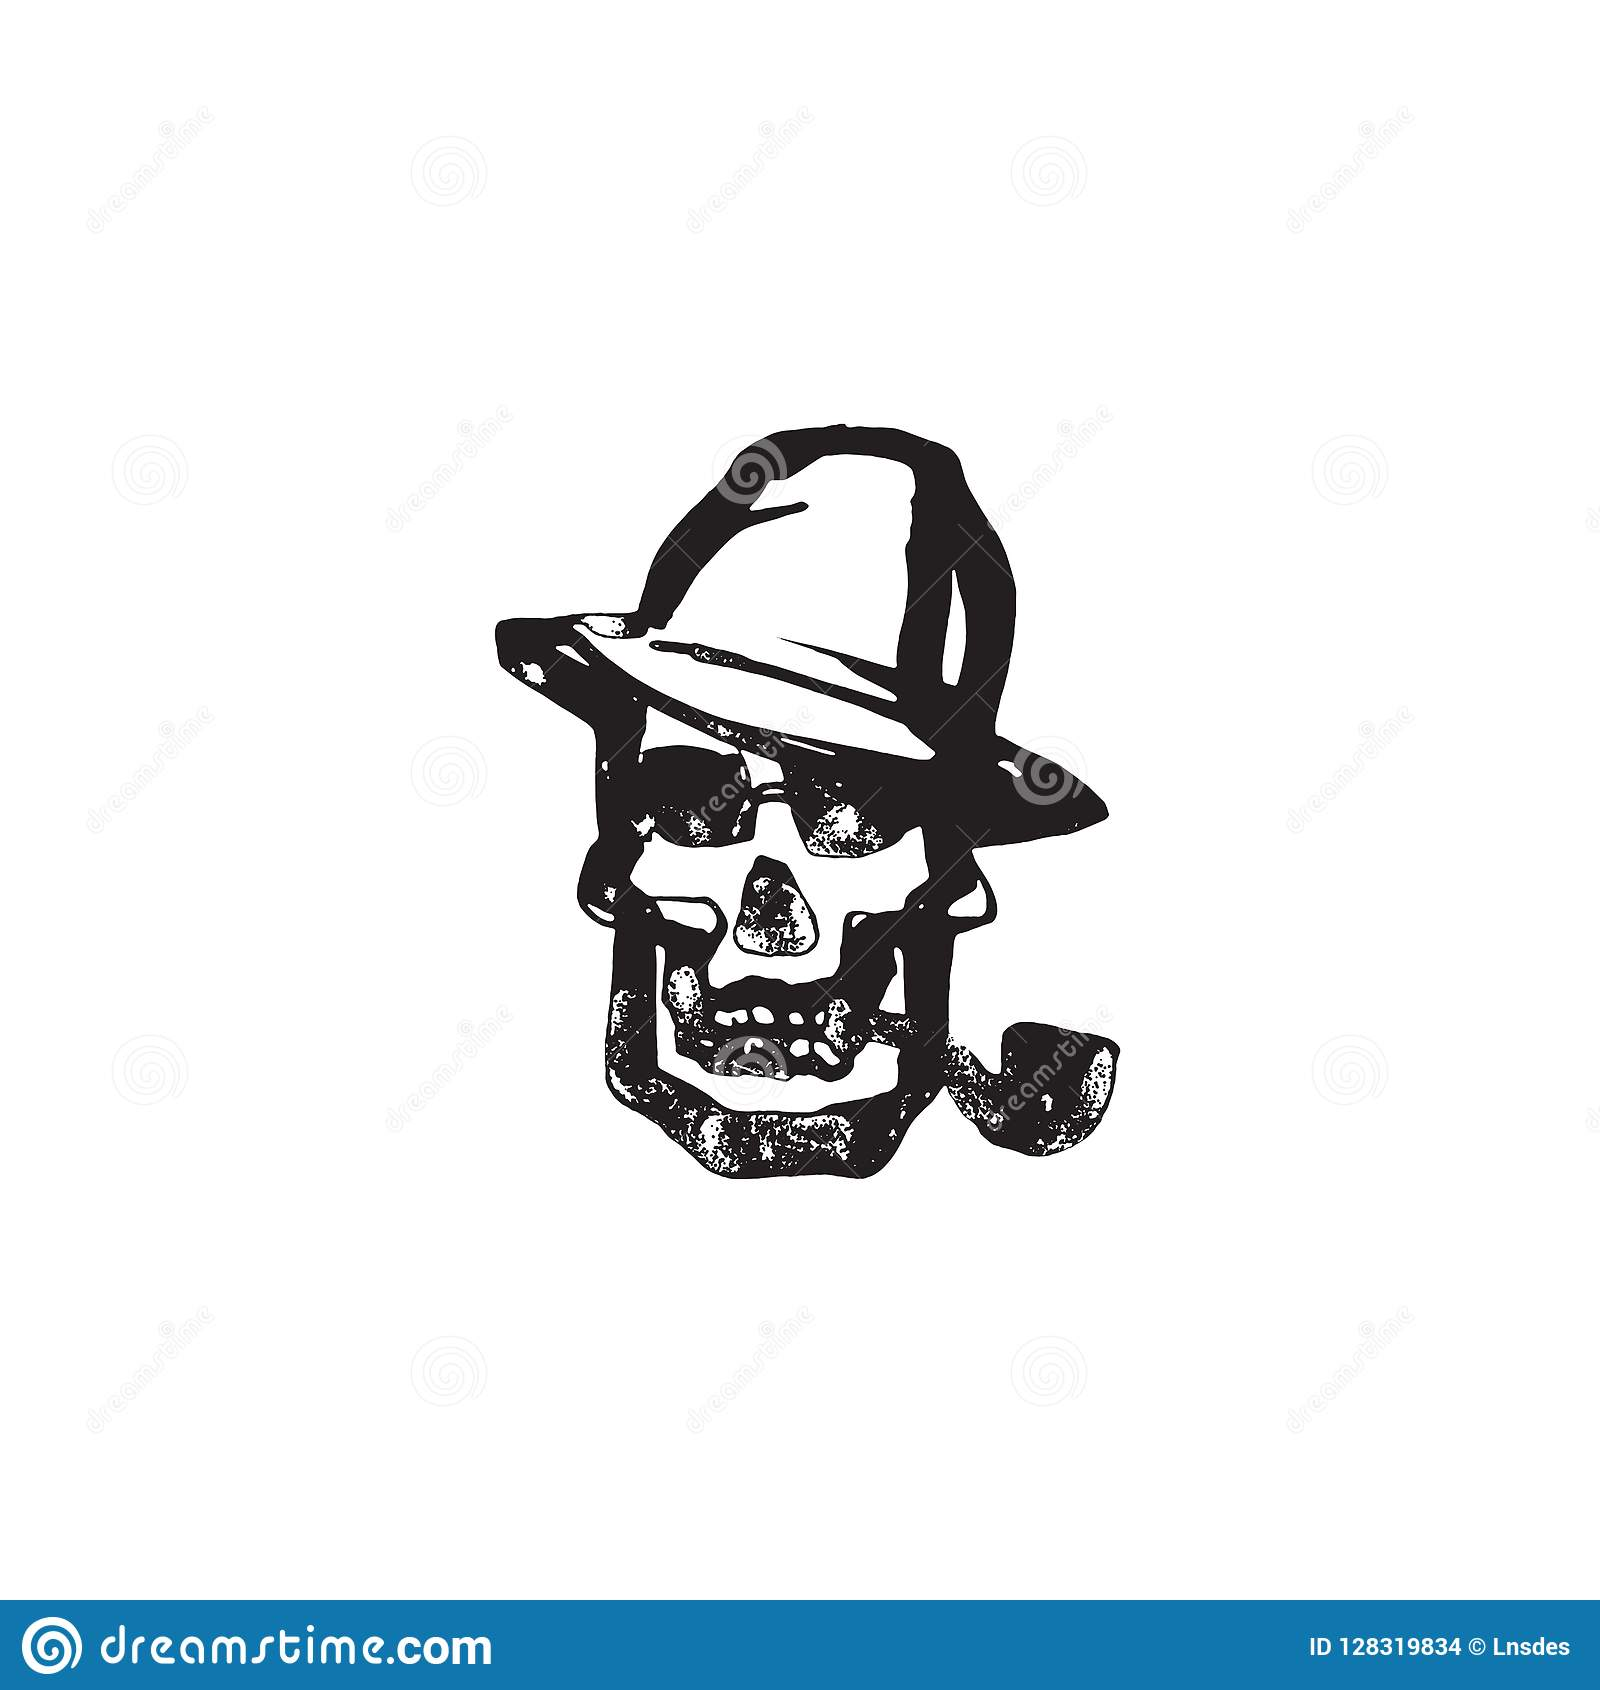 Death head with pipe and hat hand drawn human skull smoking